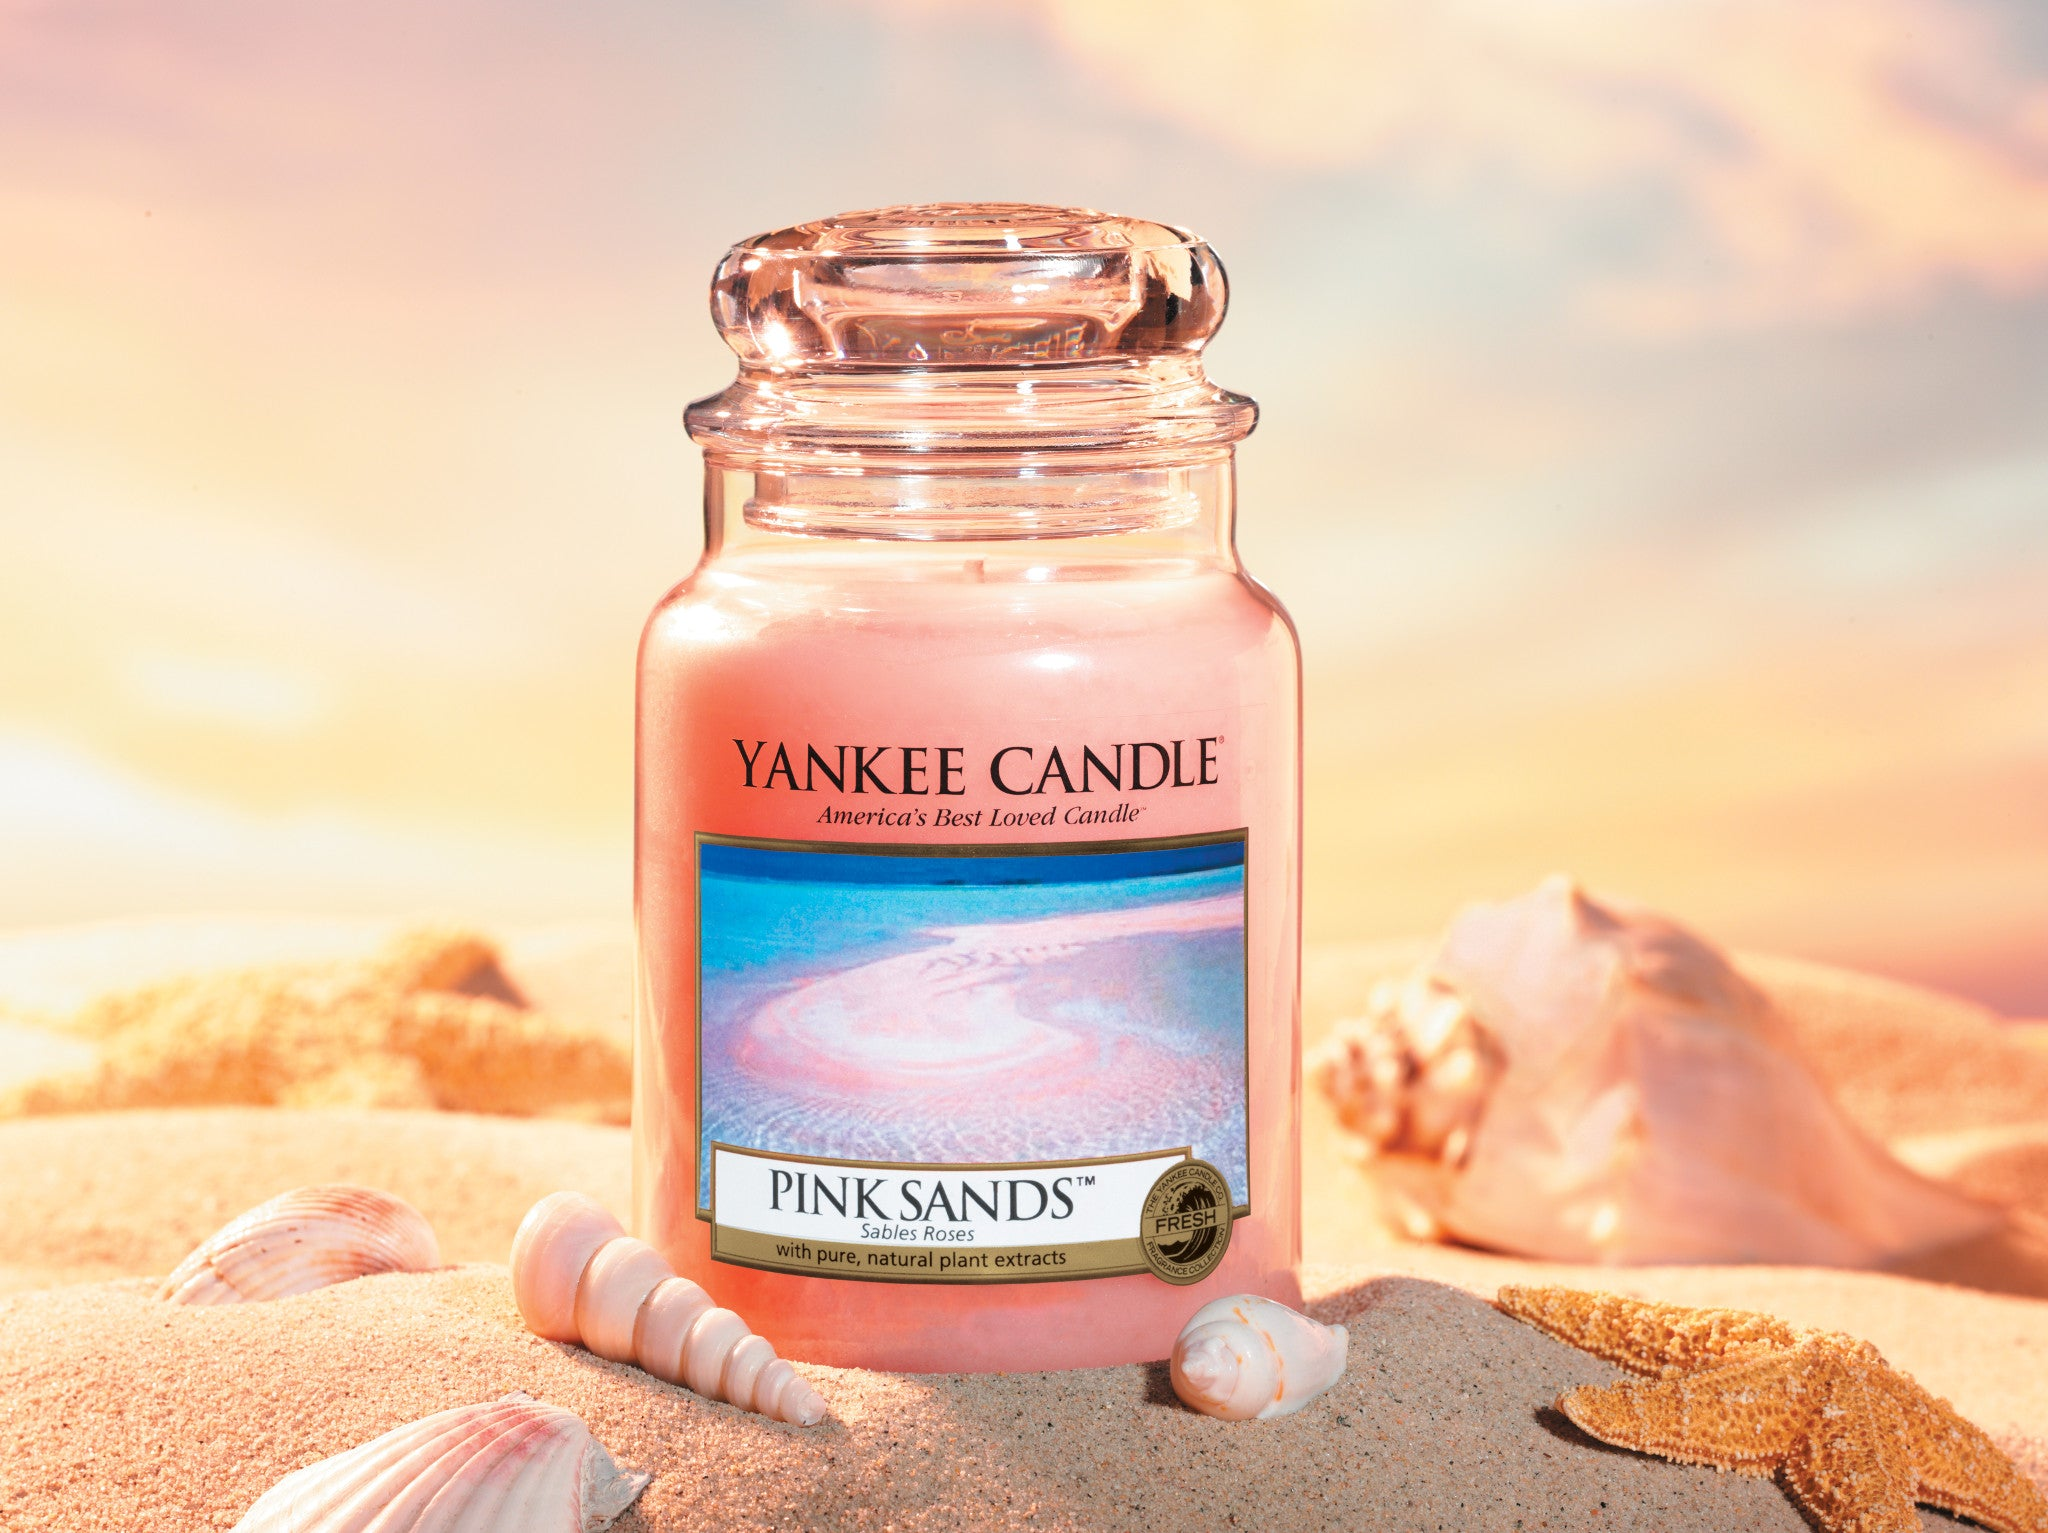 PINK SANDS -Yankee Candle- Tart